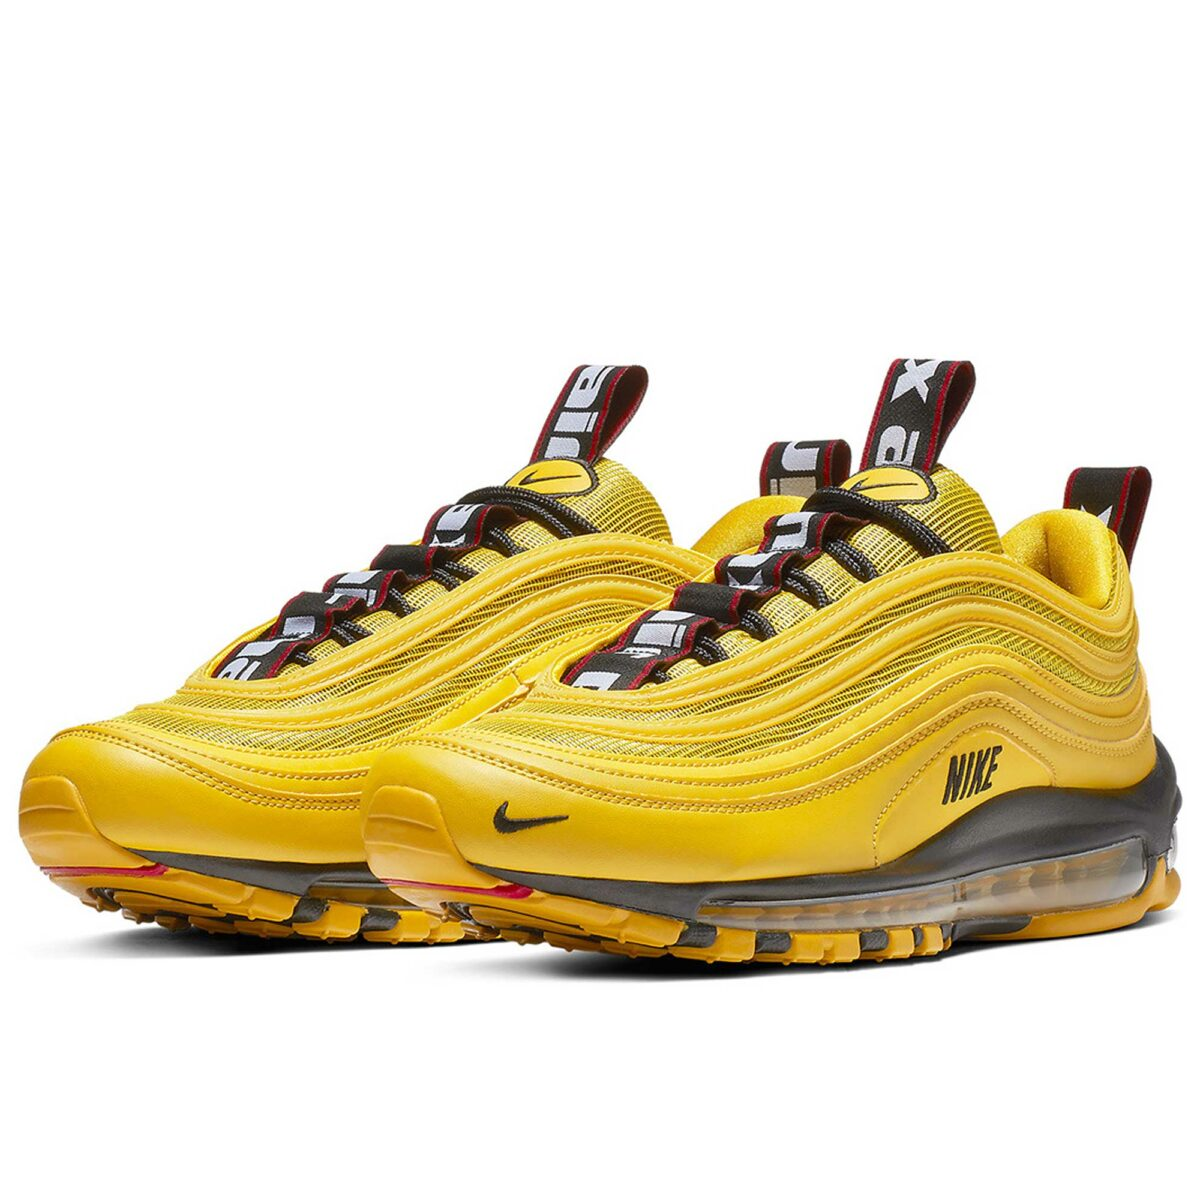 nike air max 97 taxi yellow купить